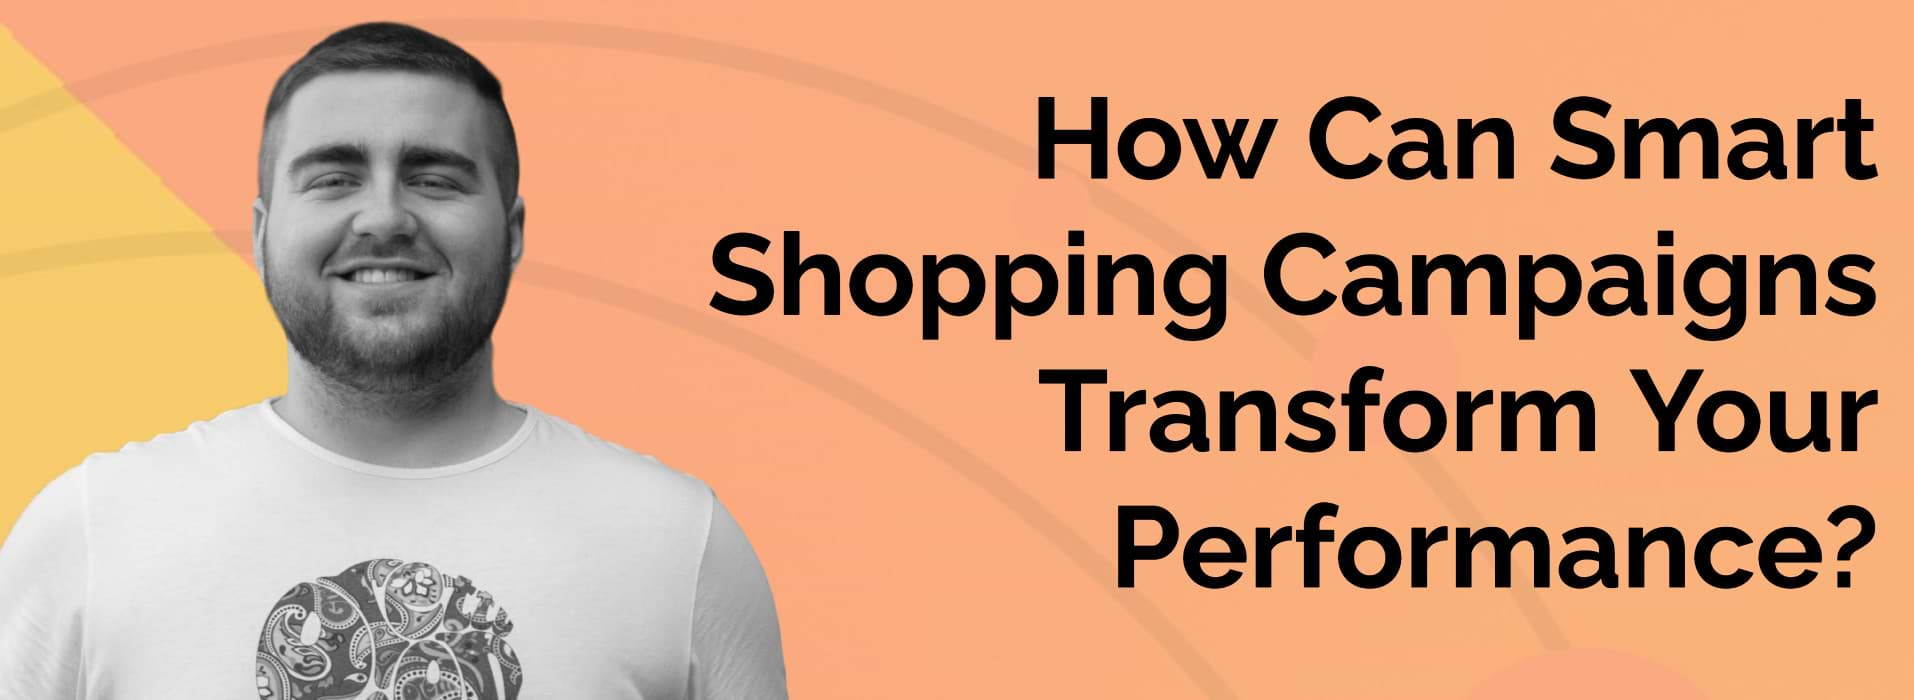 How Can Smart Shopping Campaigns Transform Your Performance